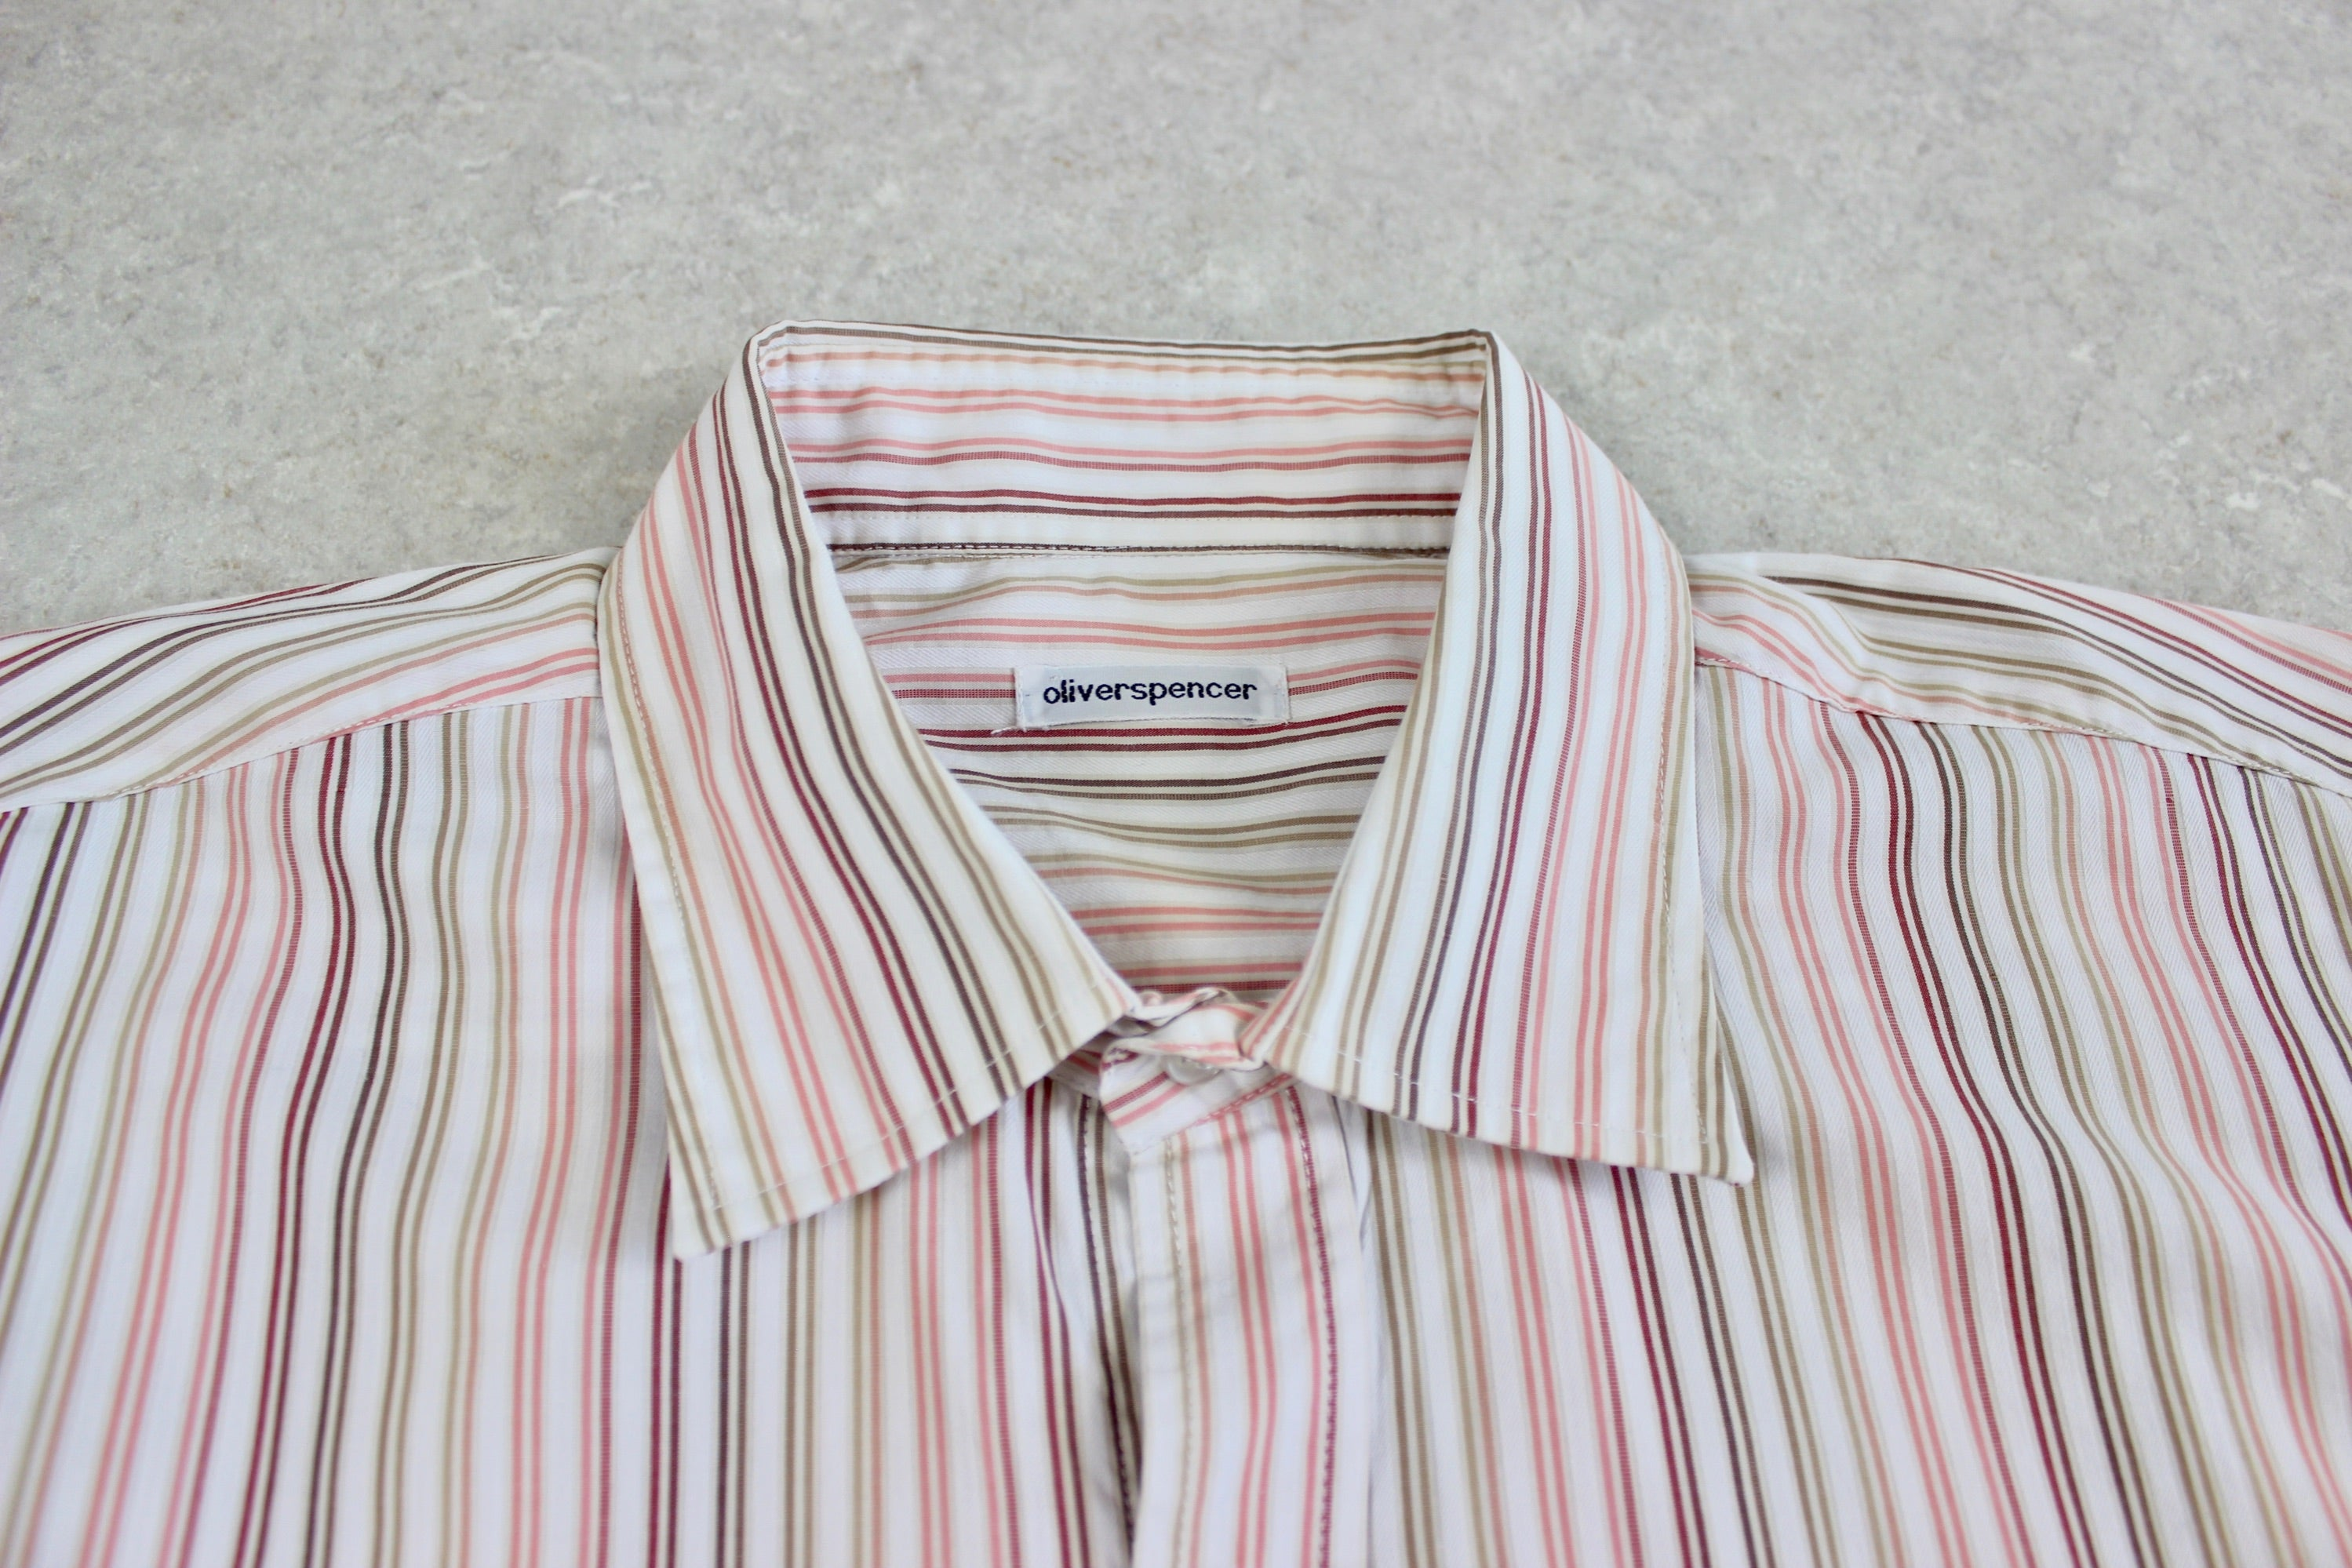 Oliver Spencer - Shirt - White/Multi Stripe - 16.5 Extra Large